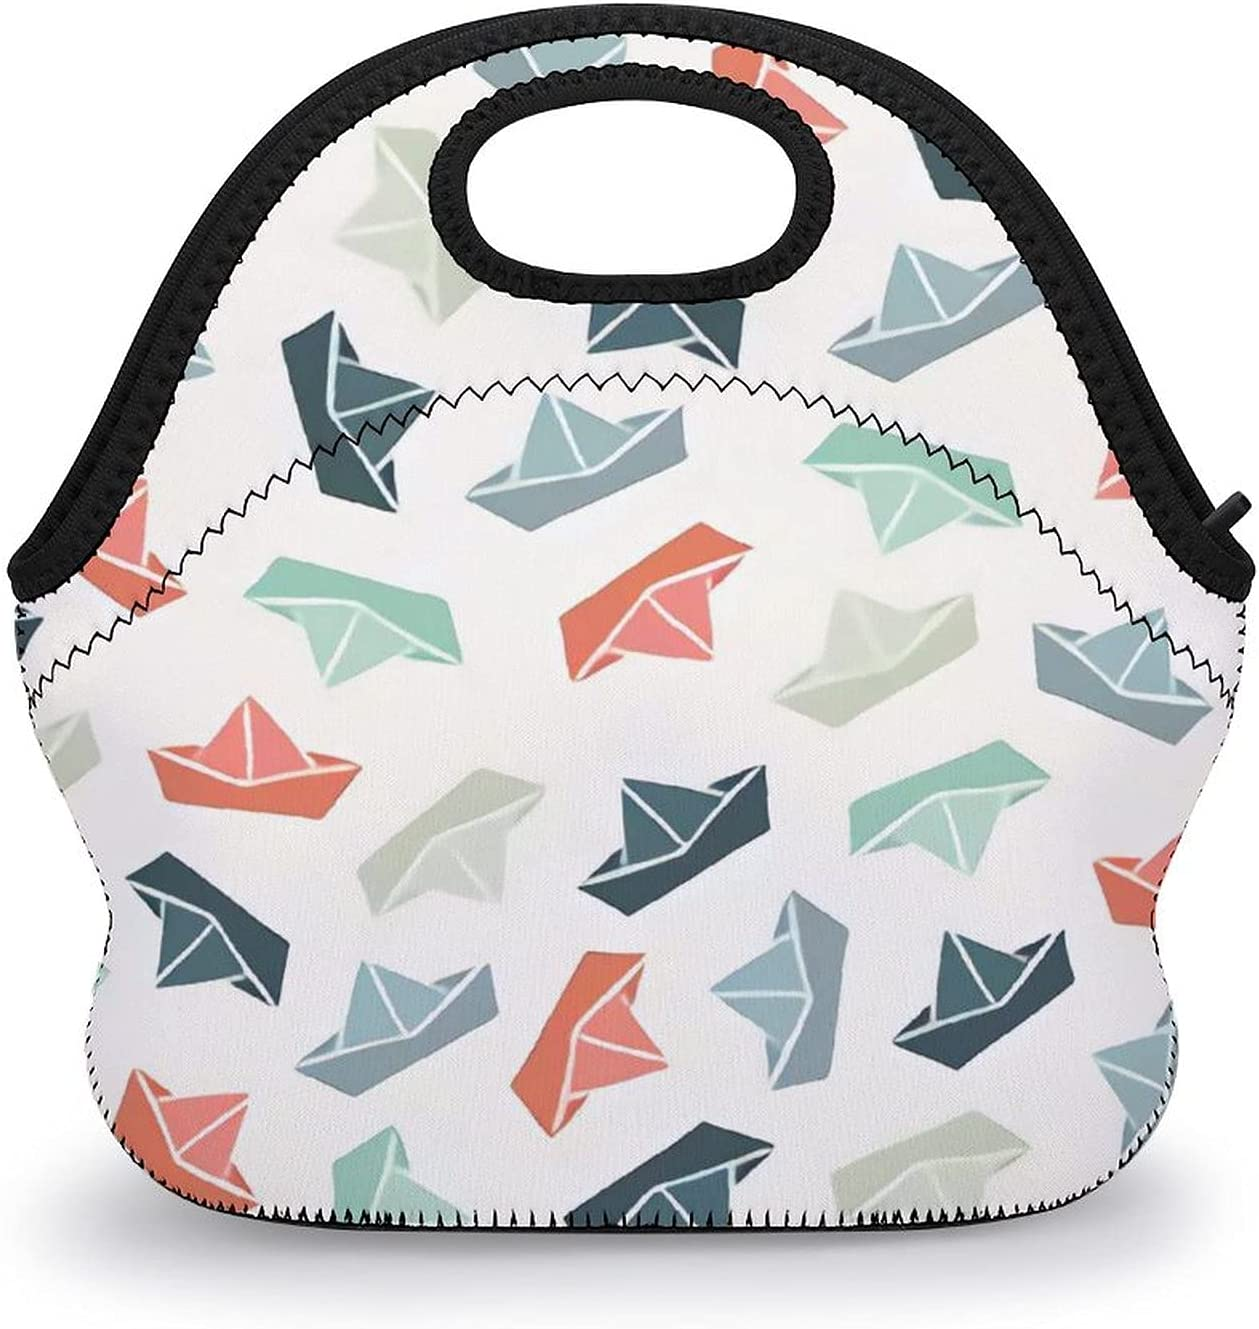 Upgraded lunch Cheap mail order shopping bag,Multicolor Boat Oklahoma City Mall Vector,reusab Paper